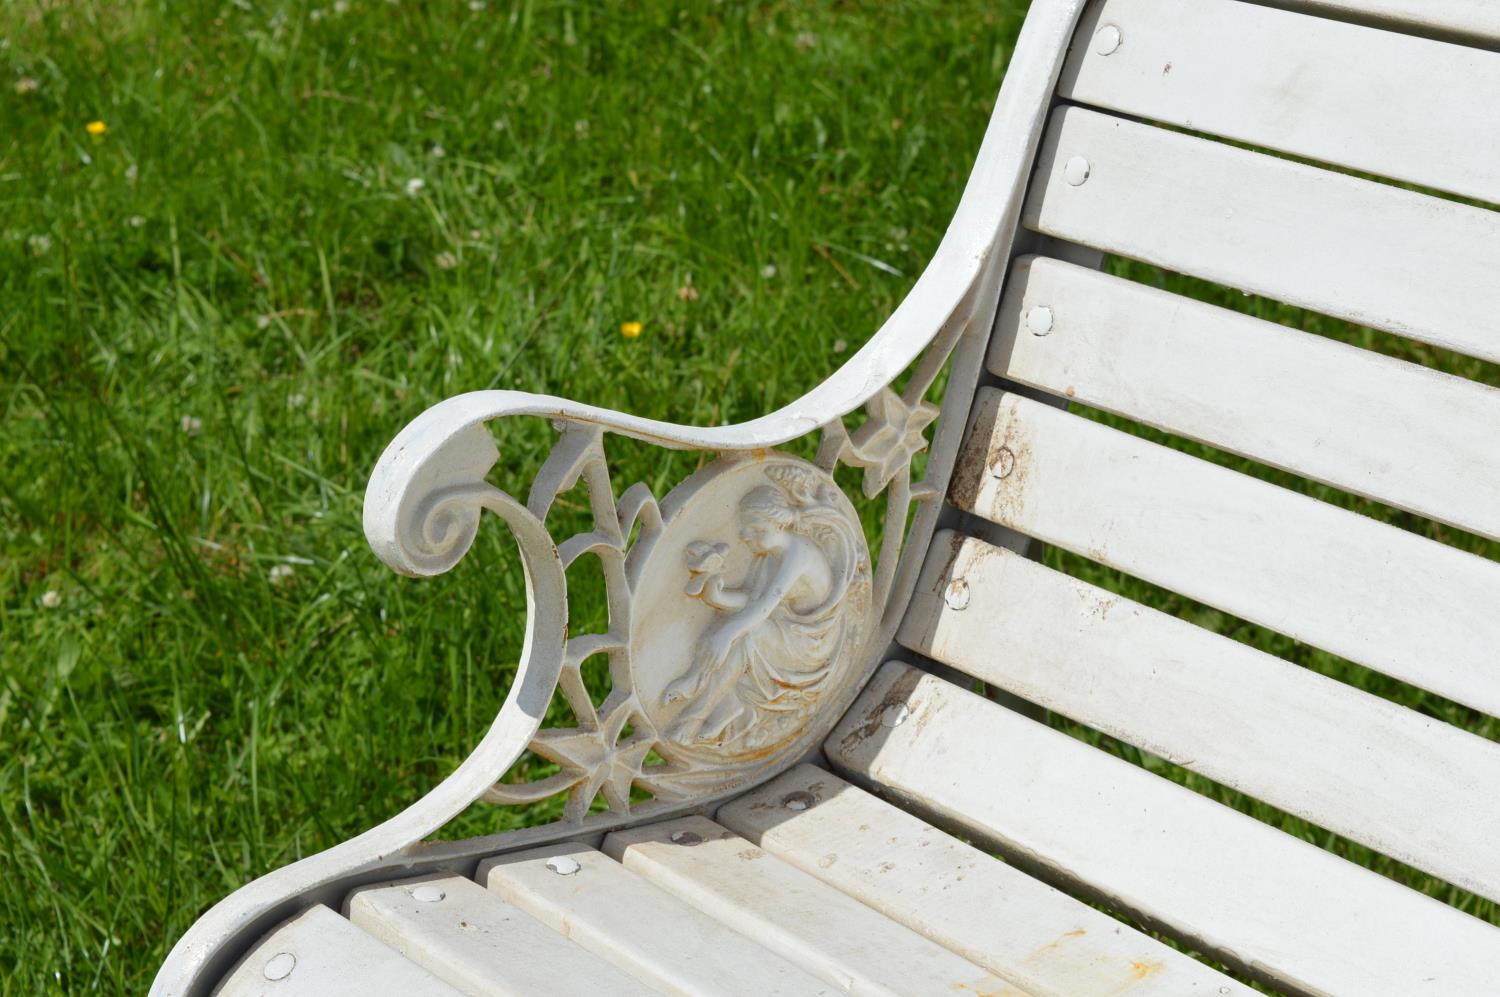 Cast iron garden seat with wooden slats - Image 2 of 2